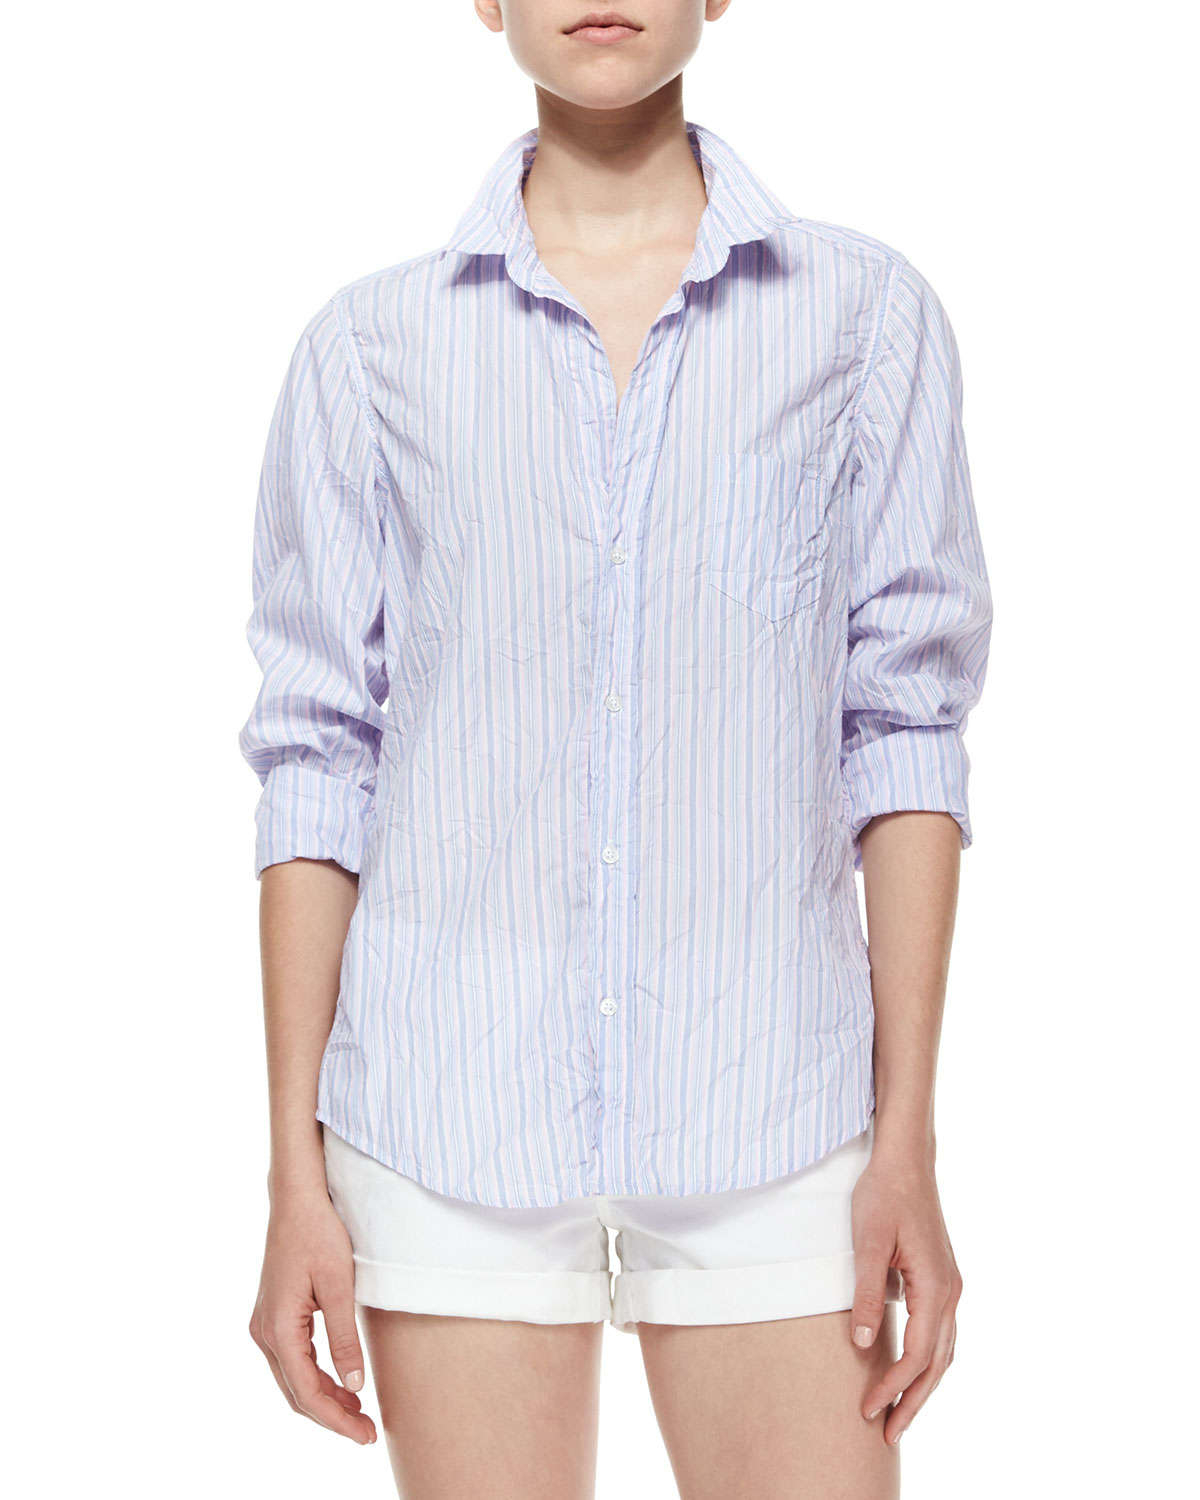 b5afc1754 Frank & Eileen Limited Edition Barry Long-sleeve Striped Blouse in ...